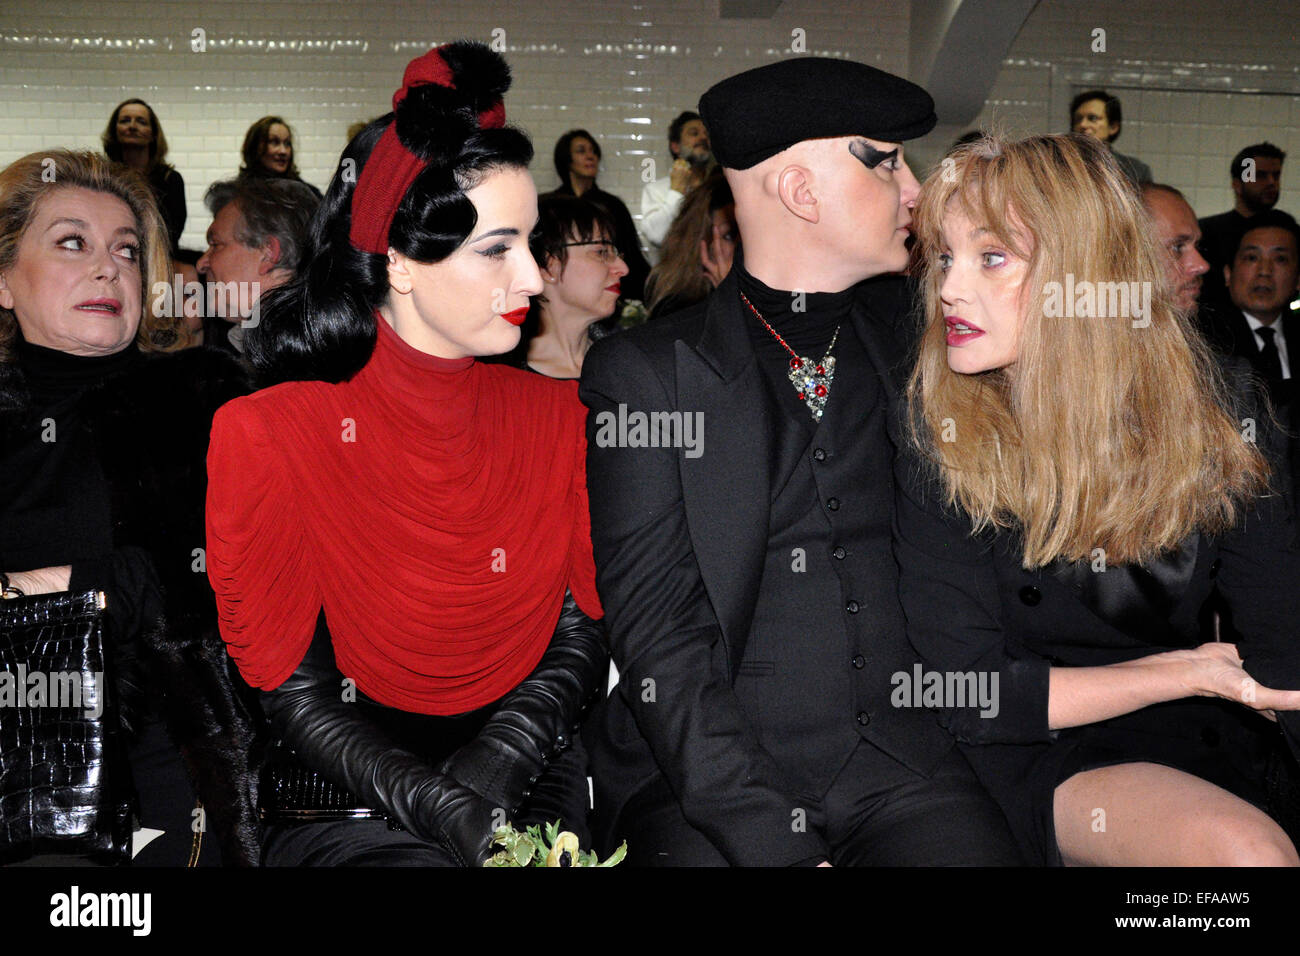 258f37415f2 Catherine Deneuve and Dita Von Teese at the Jean Paul Gaultier Haute Couture  Fashion Show in Paris